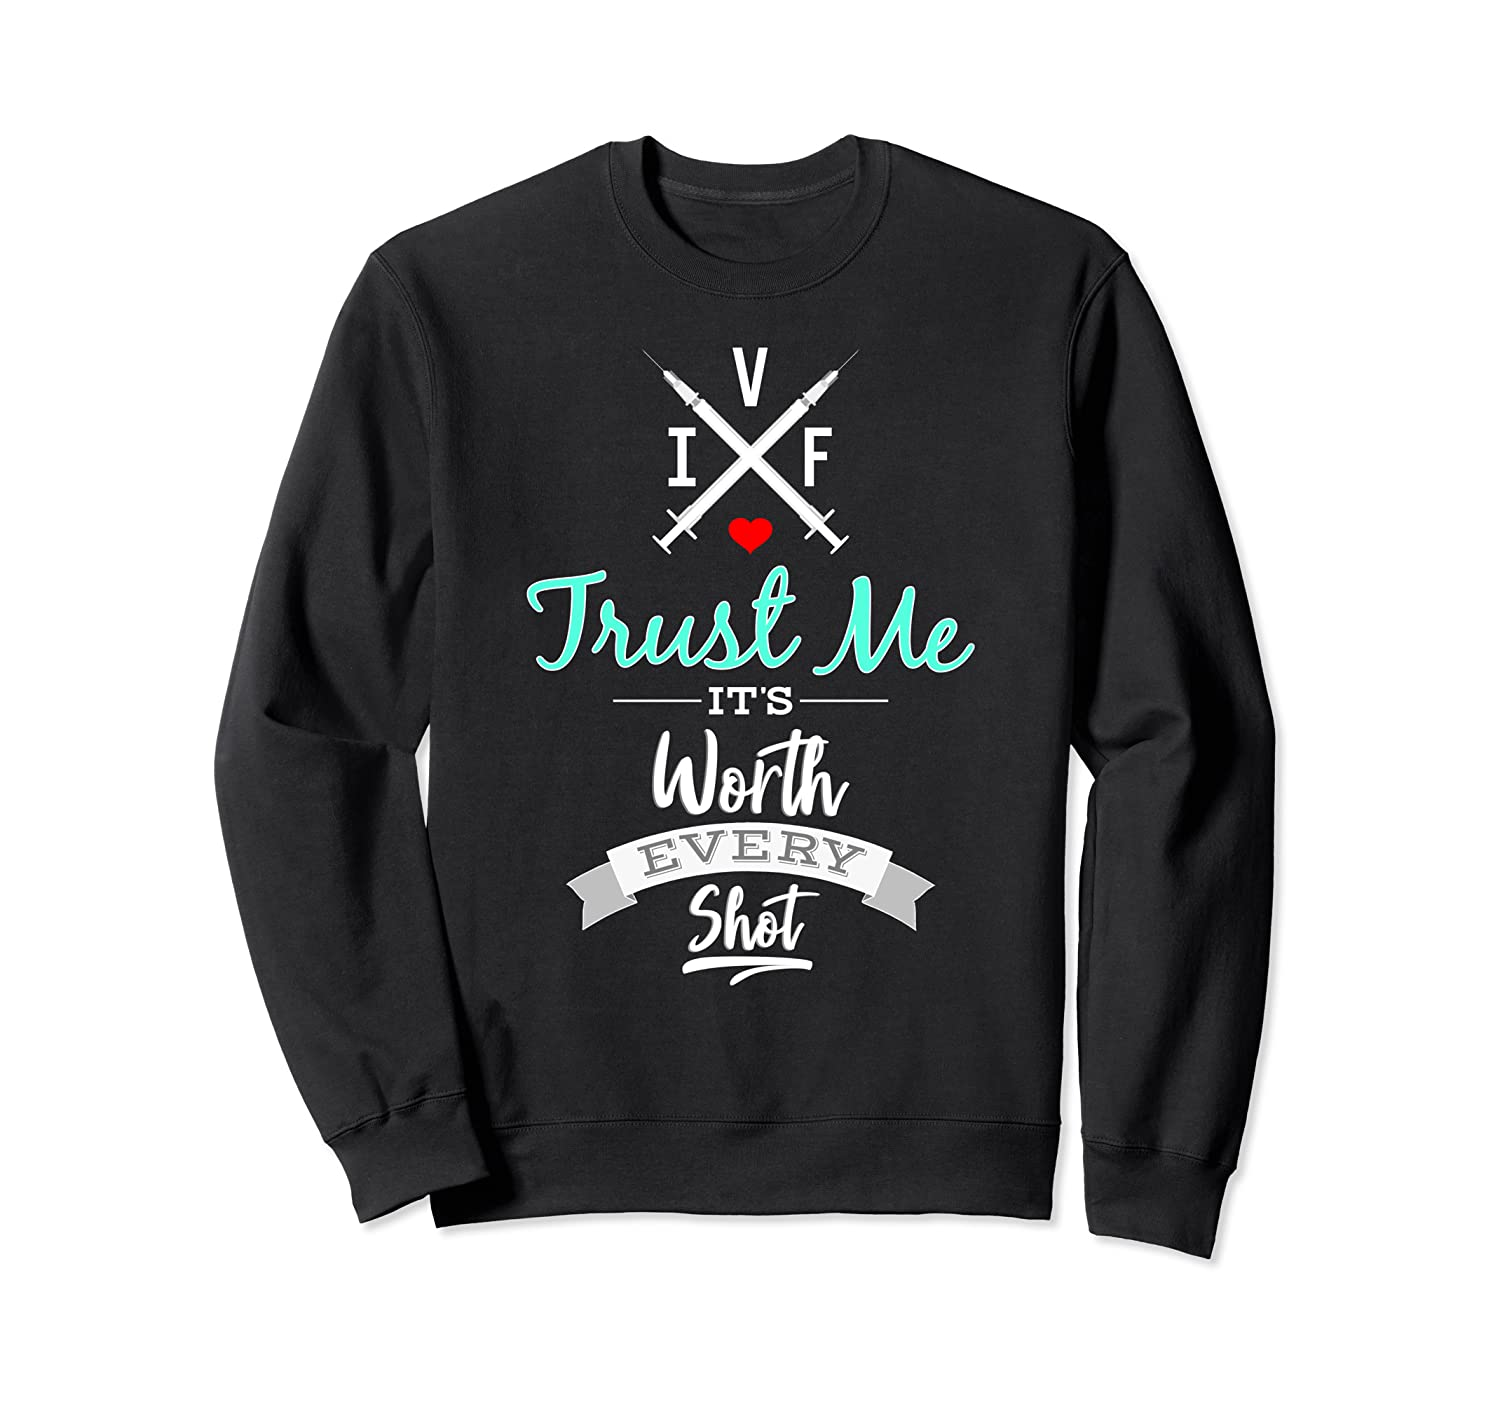 IVF Trust Me It's Worth Every Shot  Transfer Day Sweatshirt